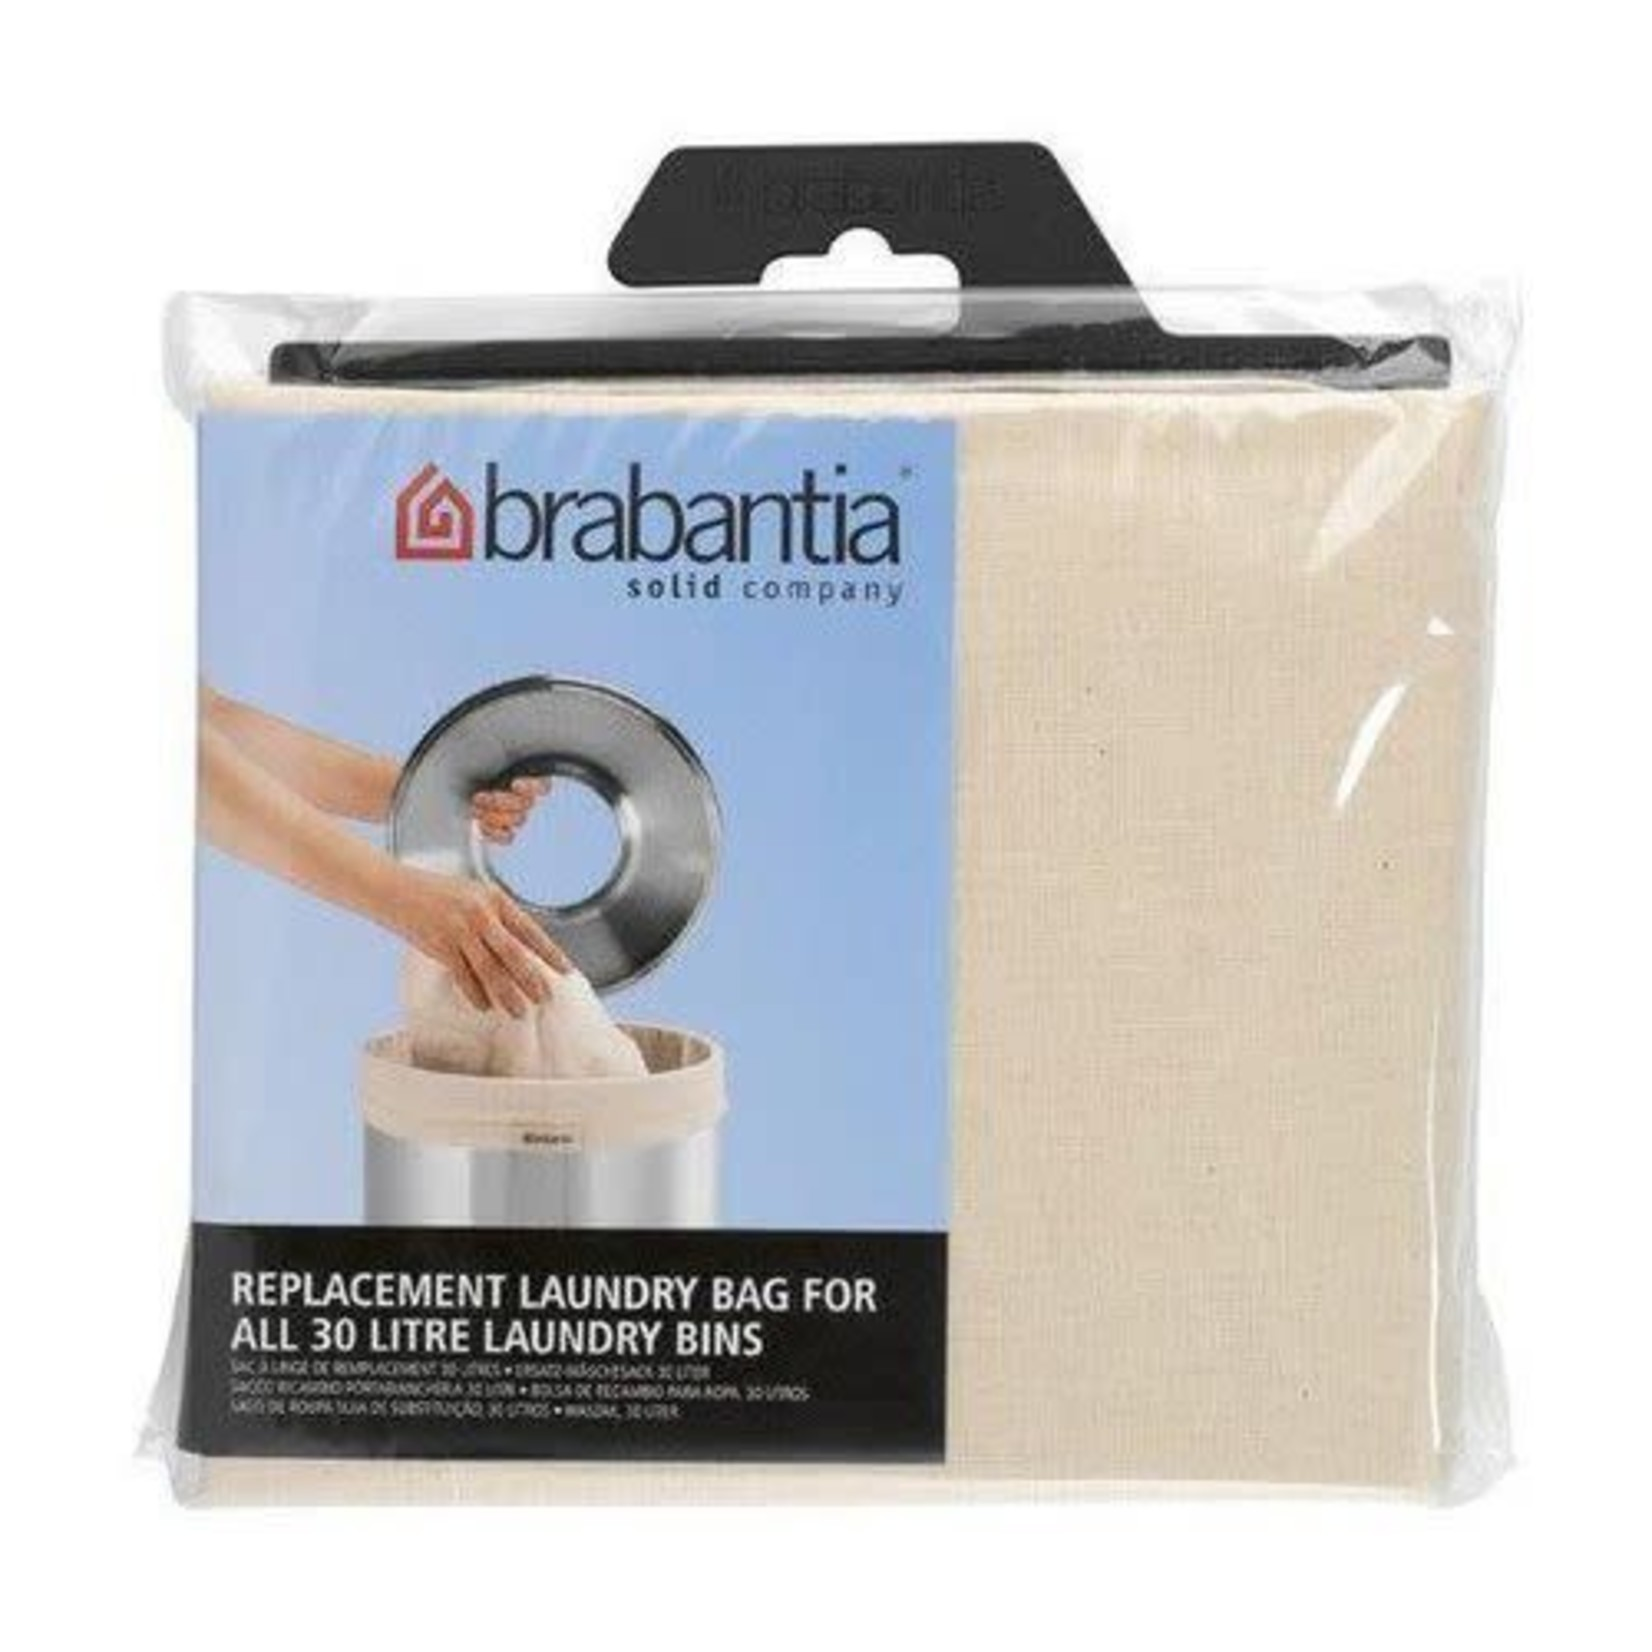 Brabantia BRABANTIA 40 LITRE - LINEN REPLACEMENT LAUNDRY BAG